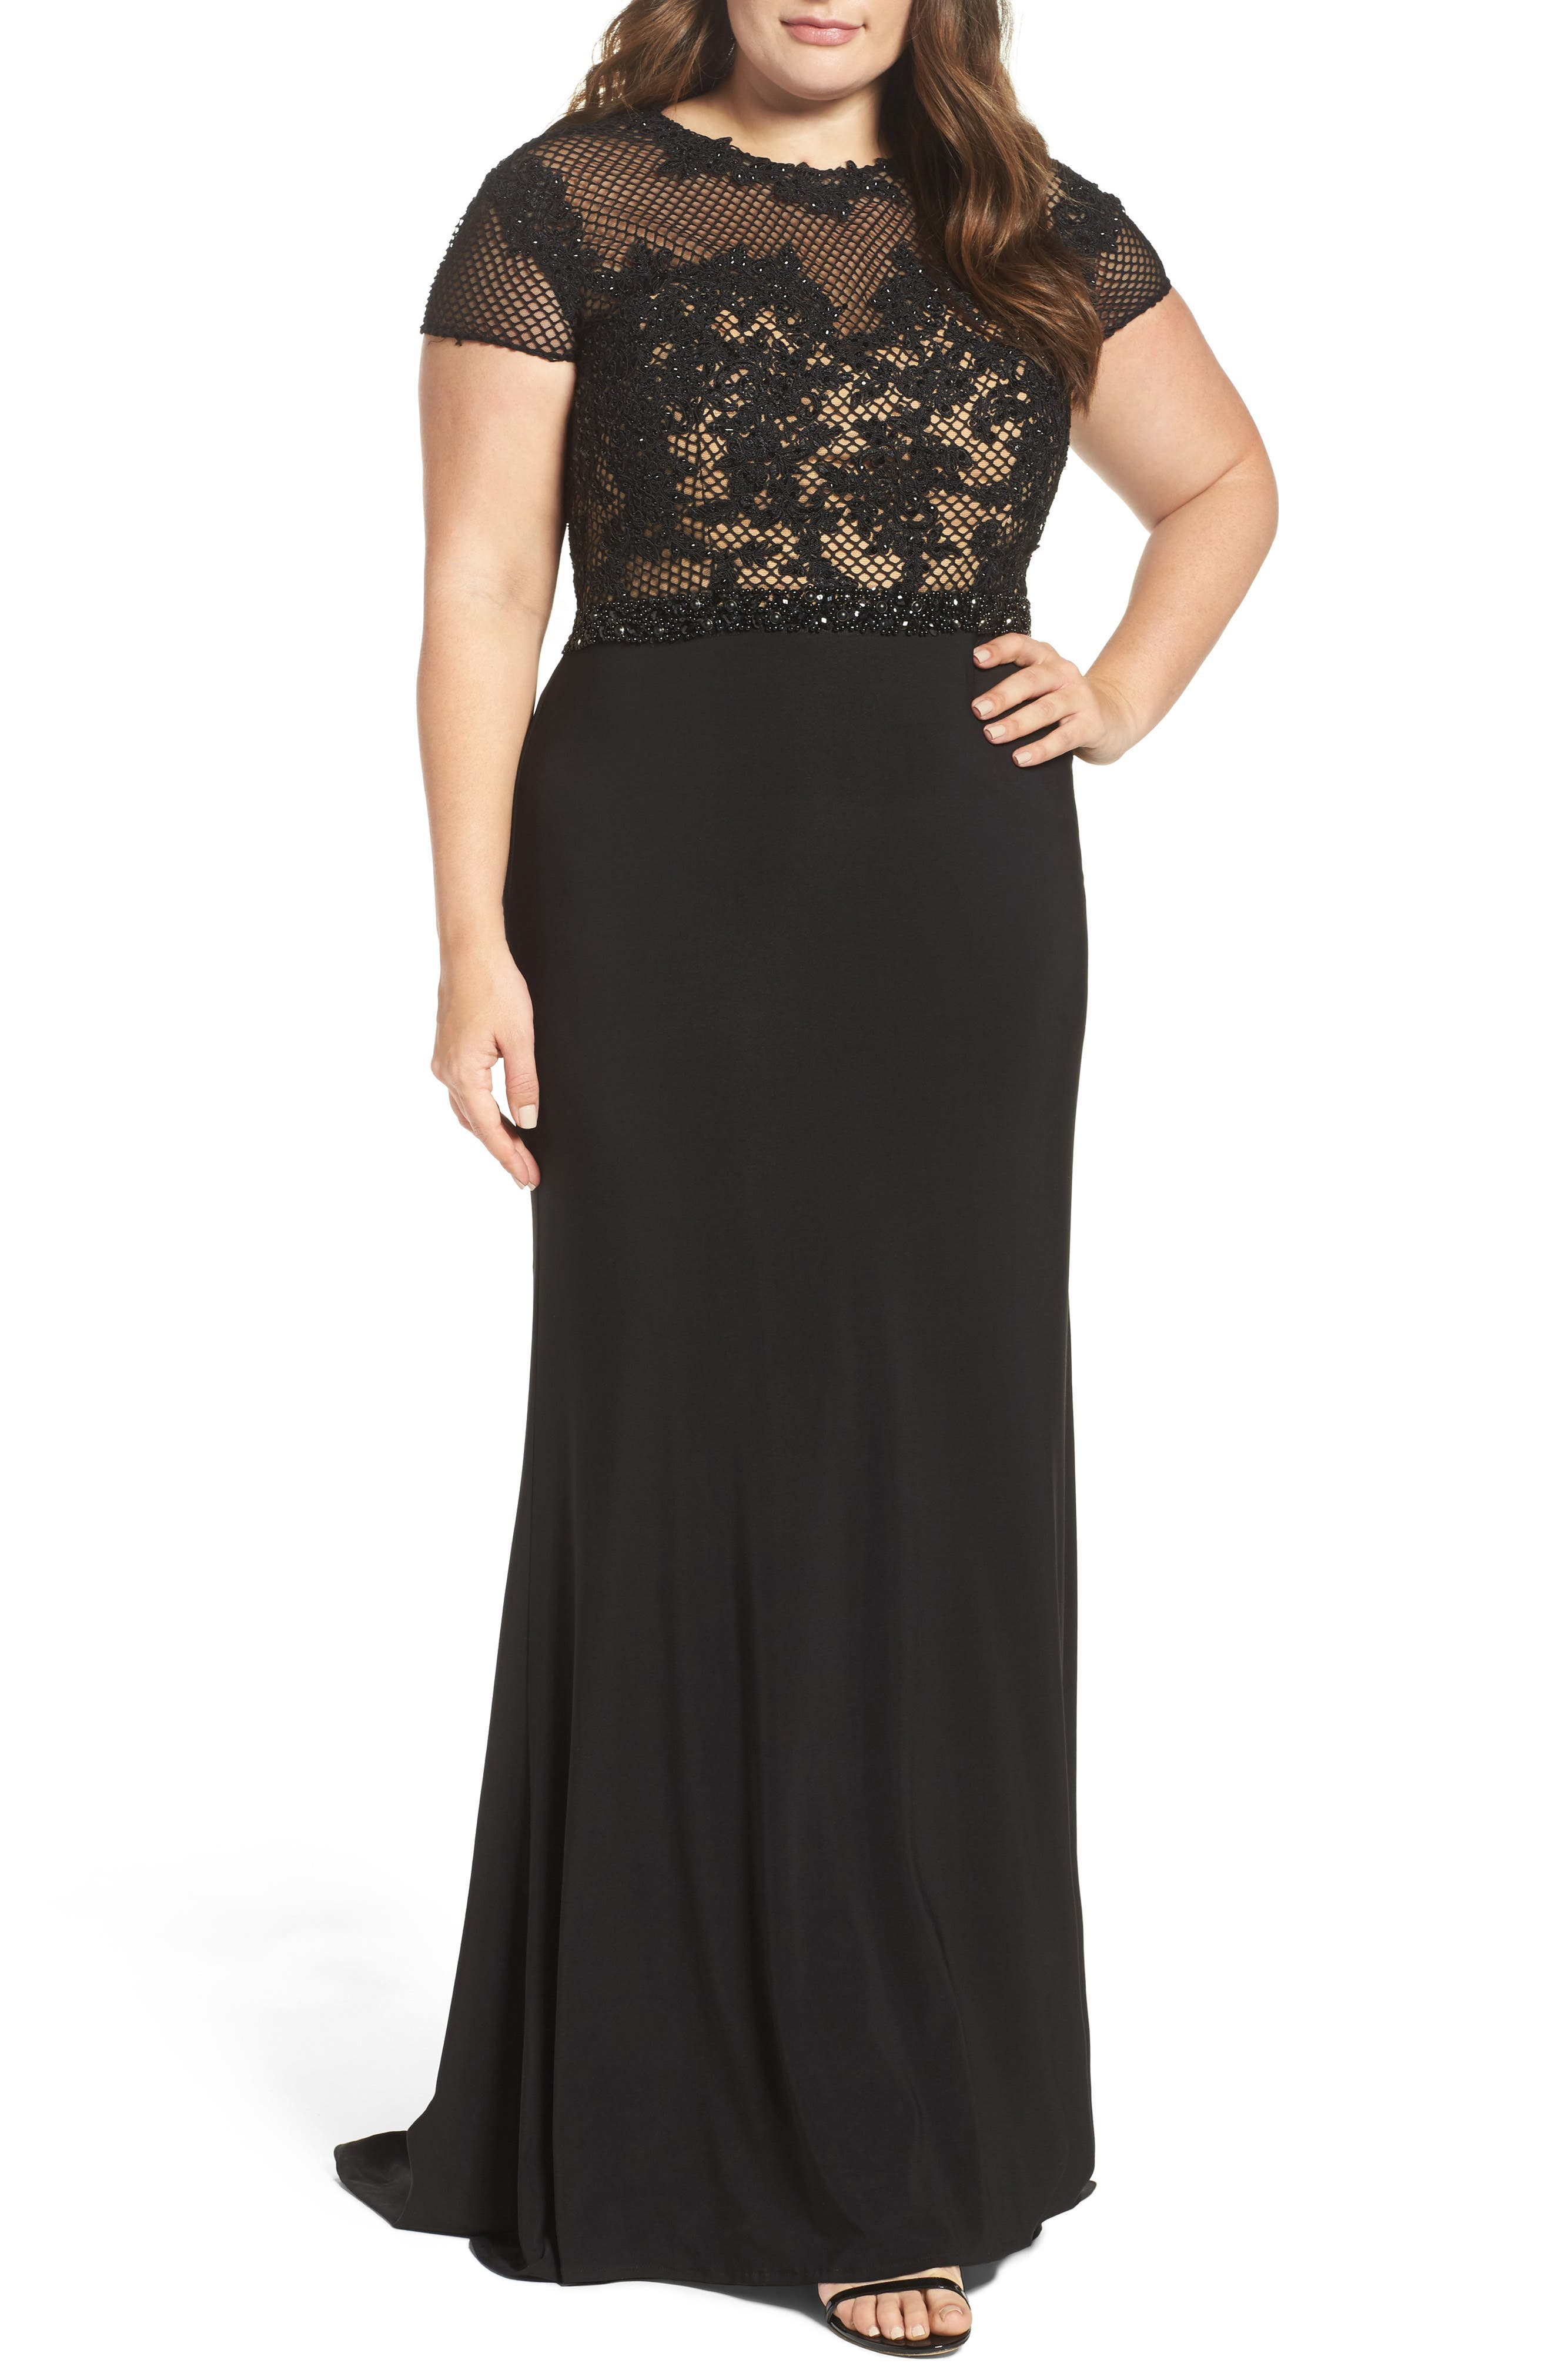 Alternate Image 1 Selected - Mac Duggal Embellished Crochet & Jersey Gown (Plus Size)